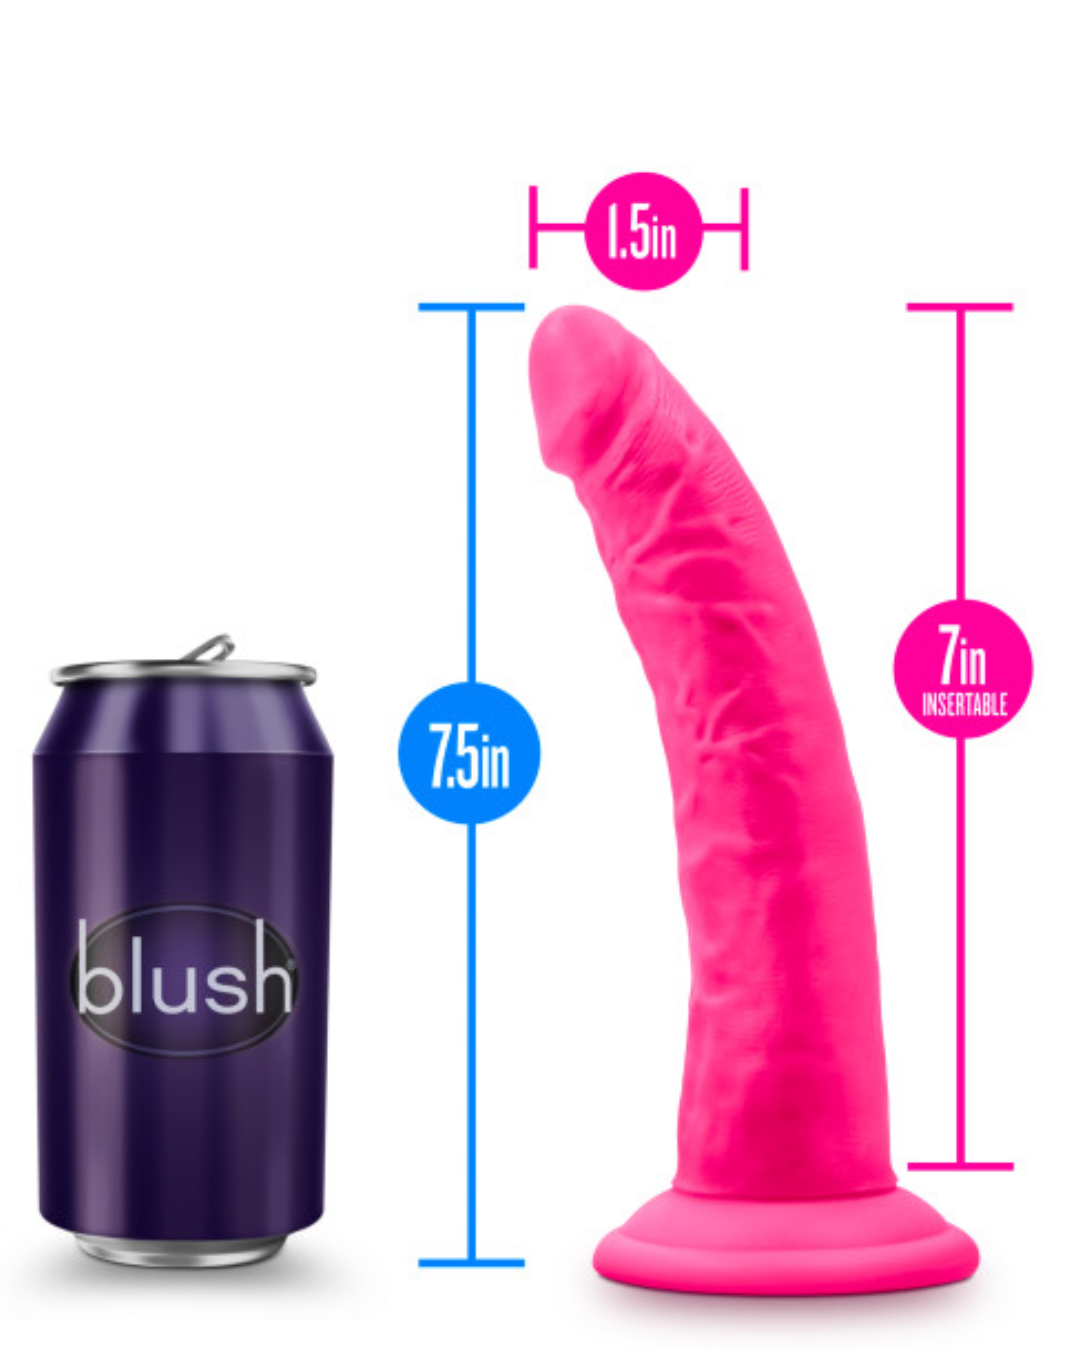 Neo Elite 7.5 Inch Dual Density Silicone Dildo by Blush - Neon Pink showing the measurements